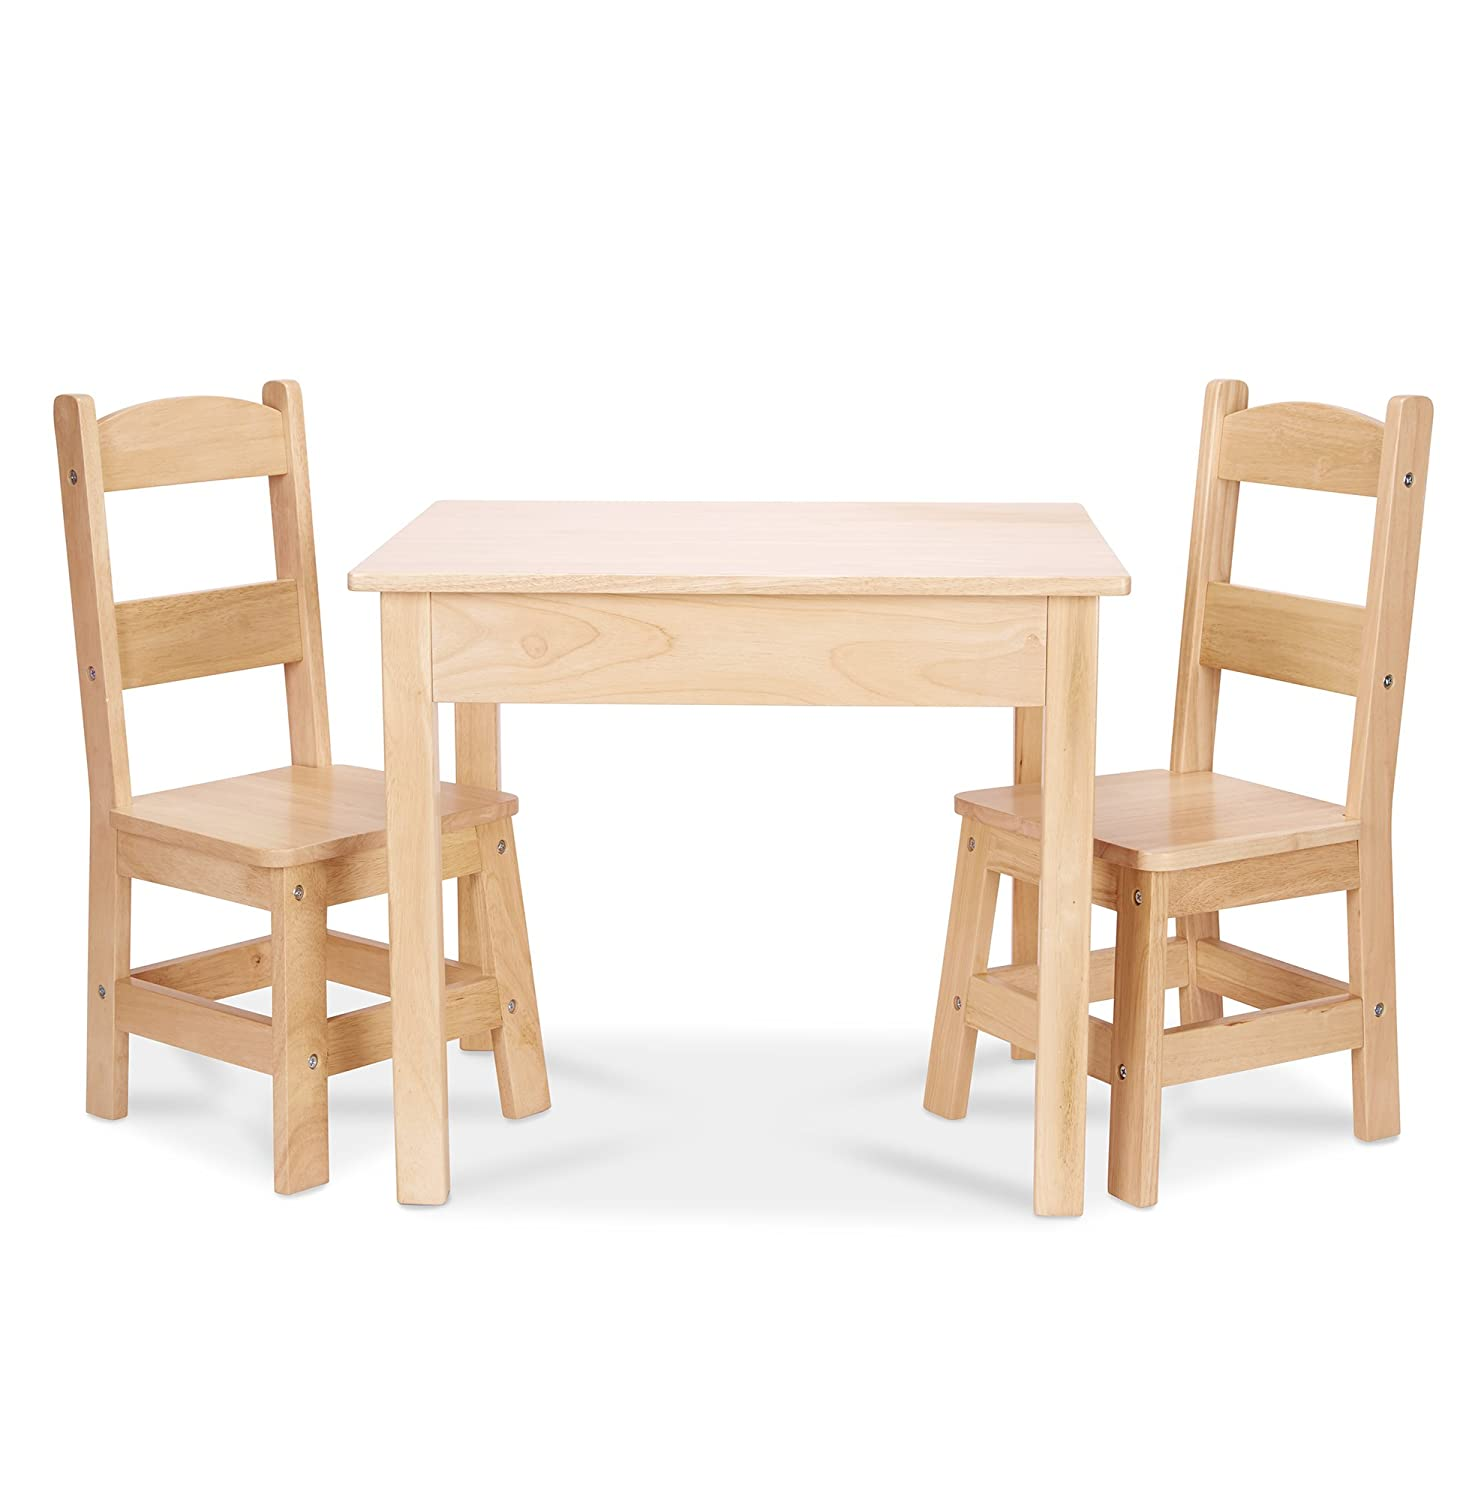 Amazon Melissa & Doug Solid Wood Table and 2 Chairs Set